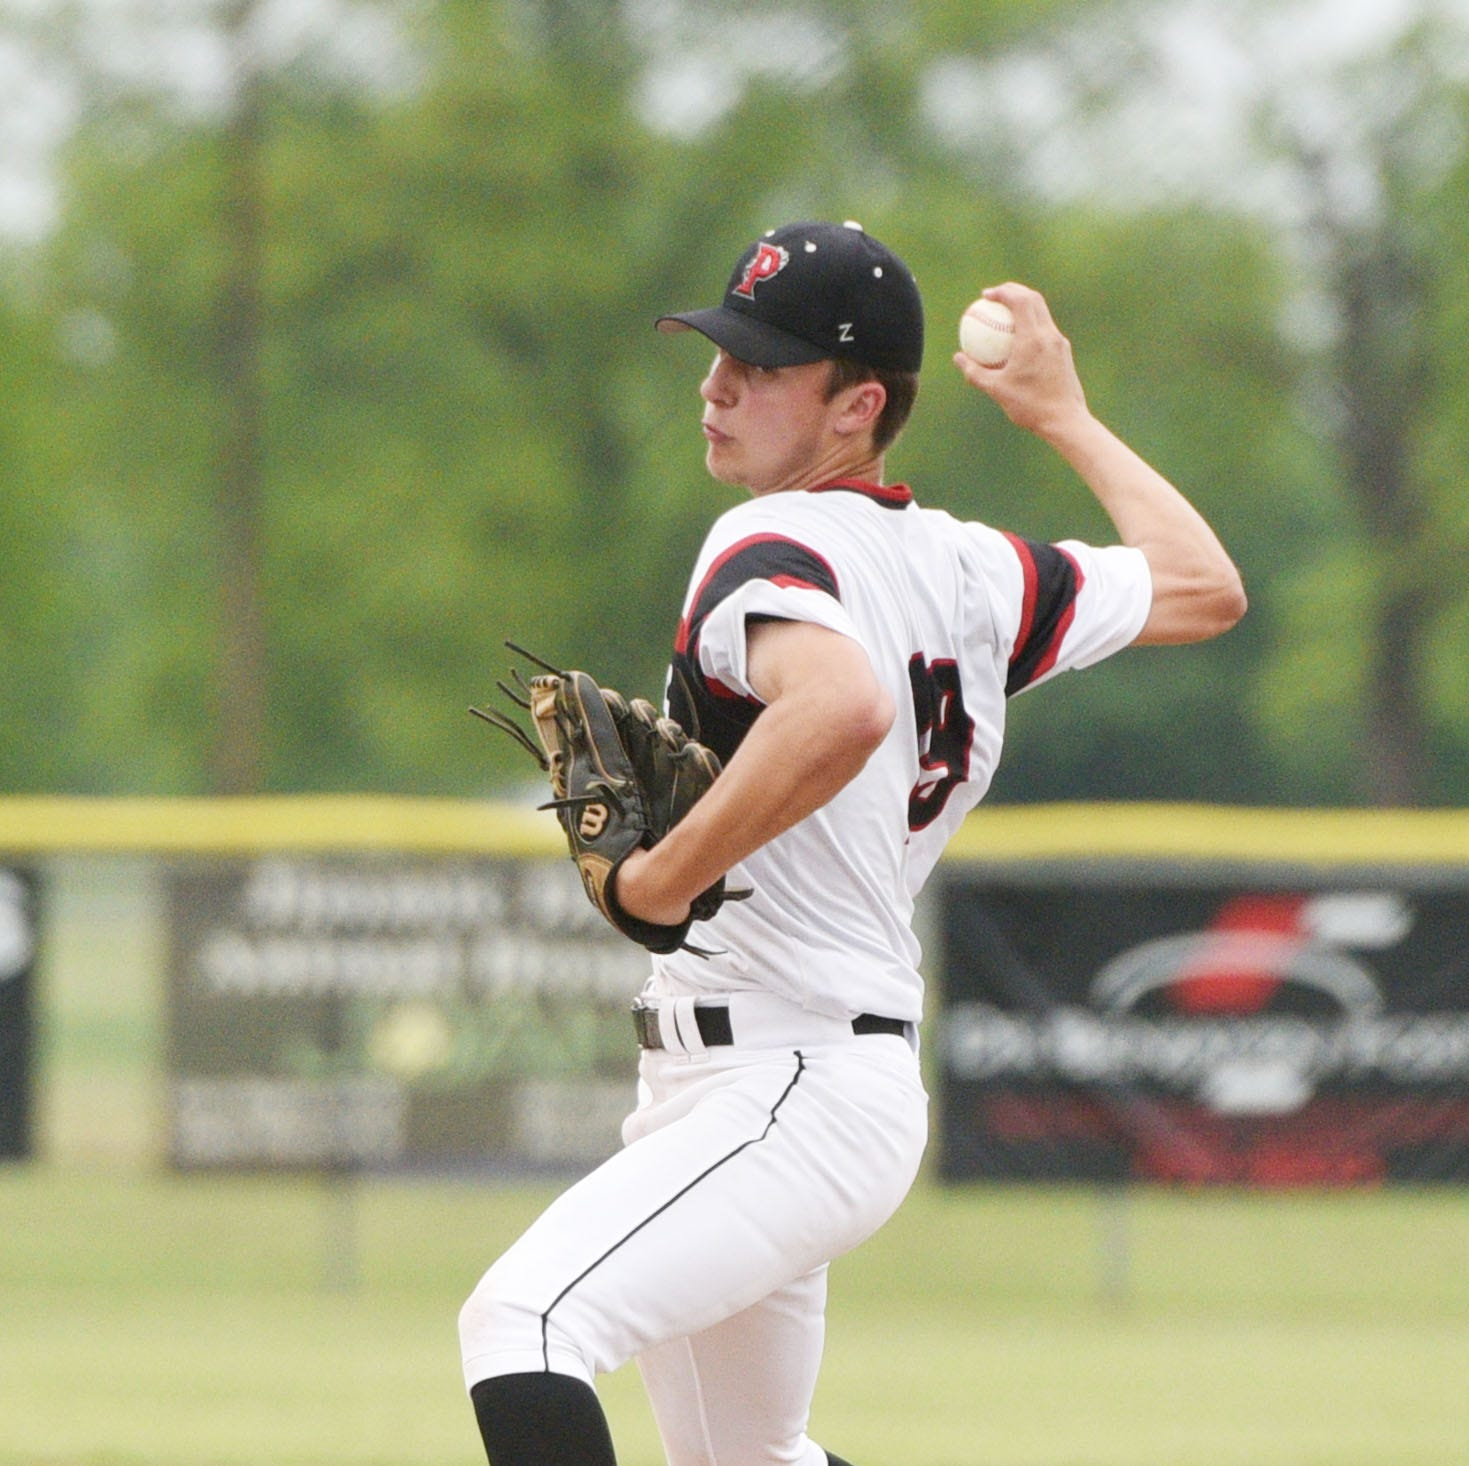 Parkway sweeps major awards on All-District 1-5A baseball